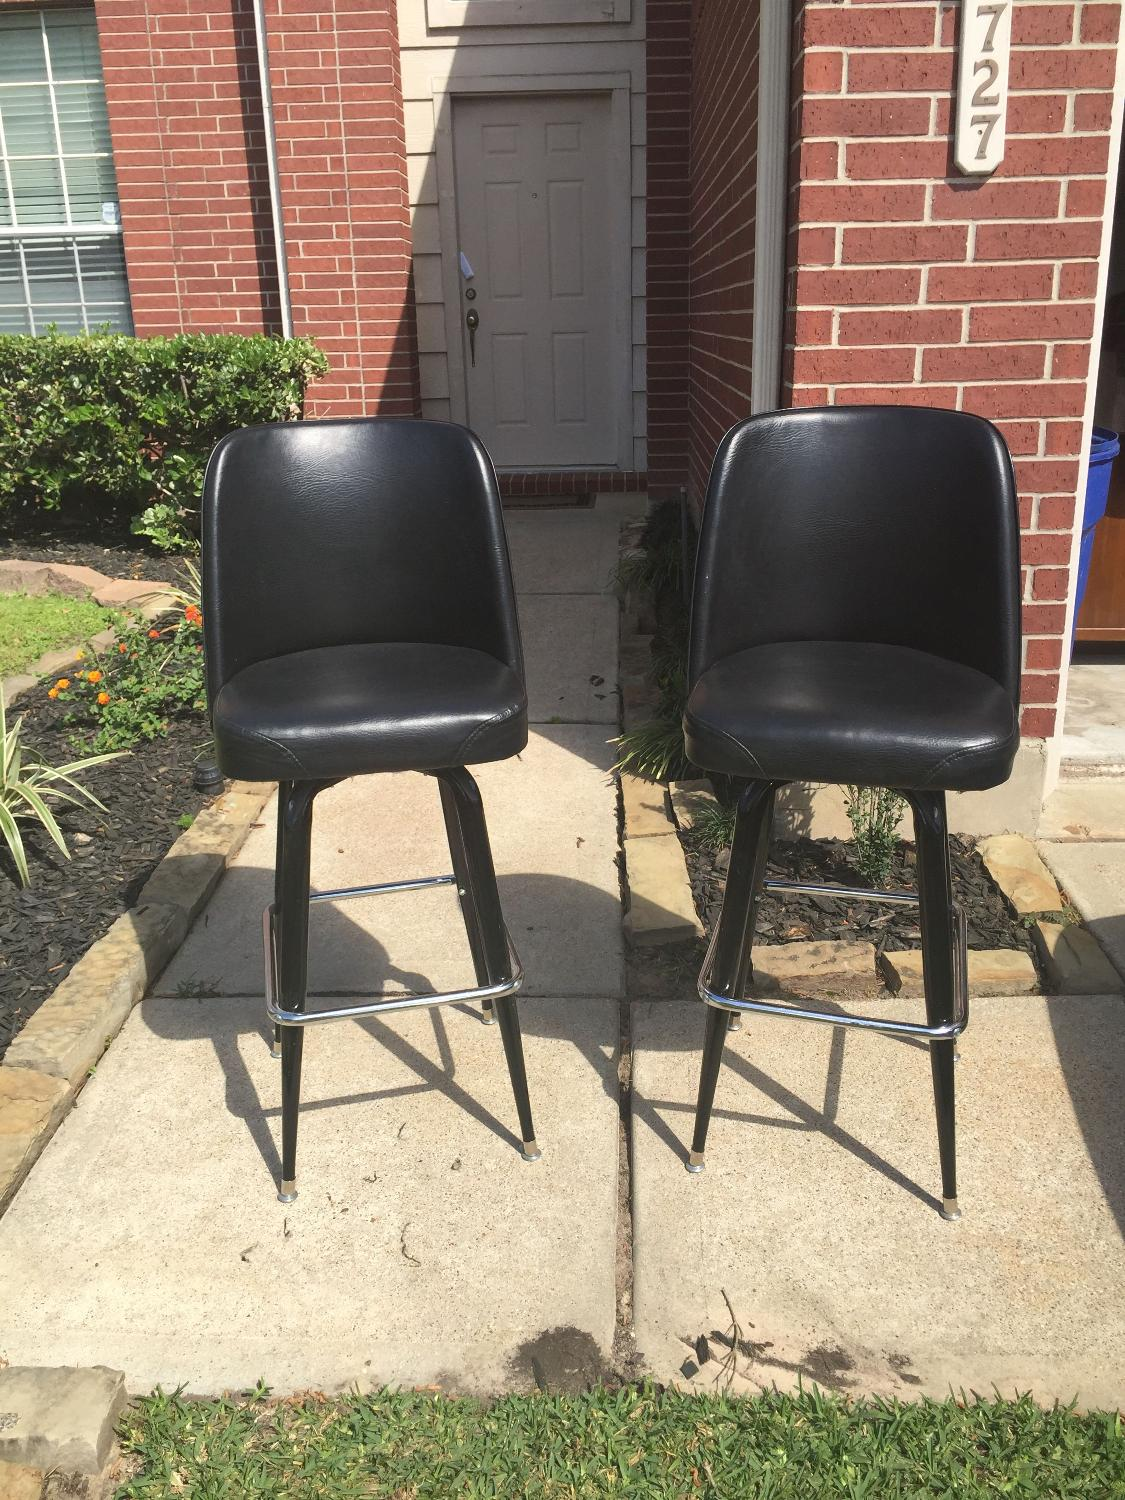 Best leather black bar stool chairs for sale in cypress for Furniture 77429